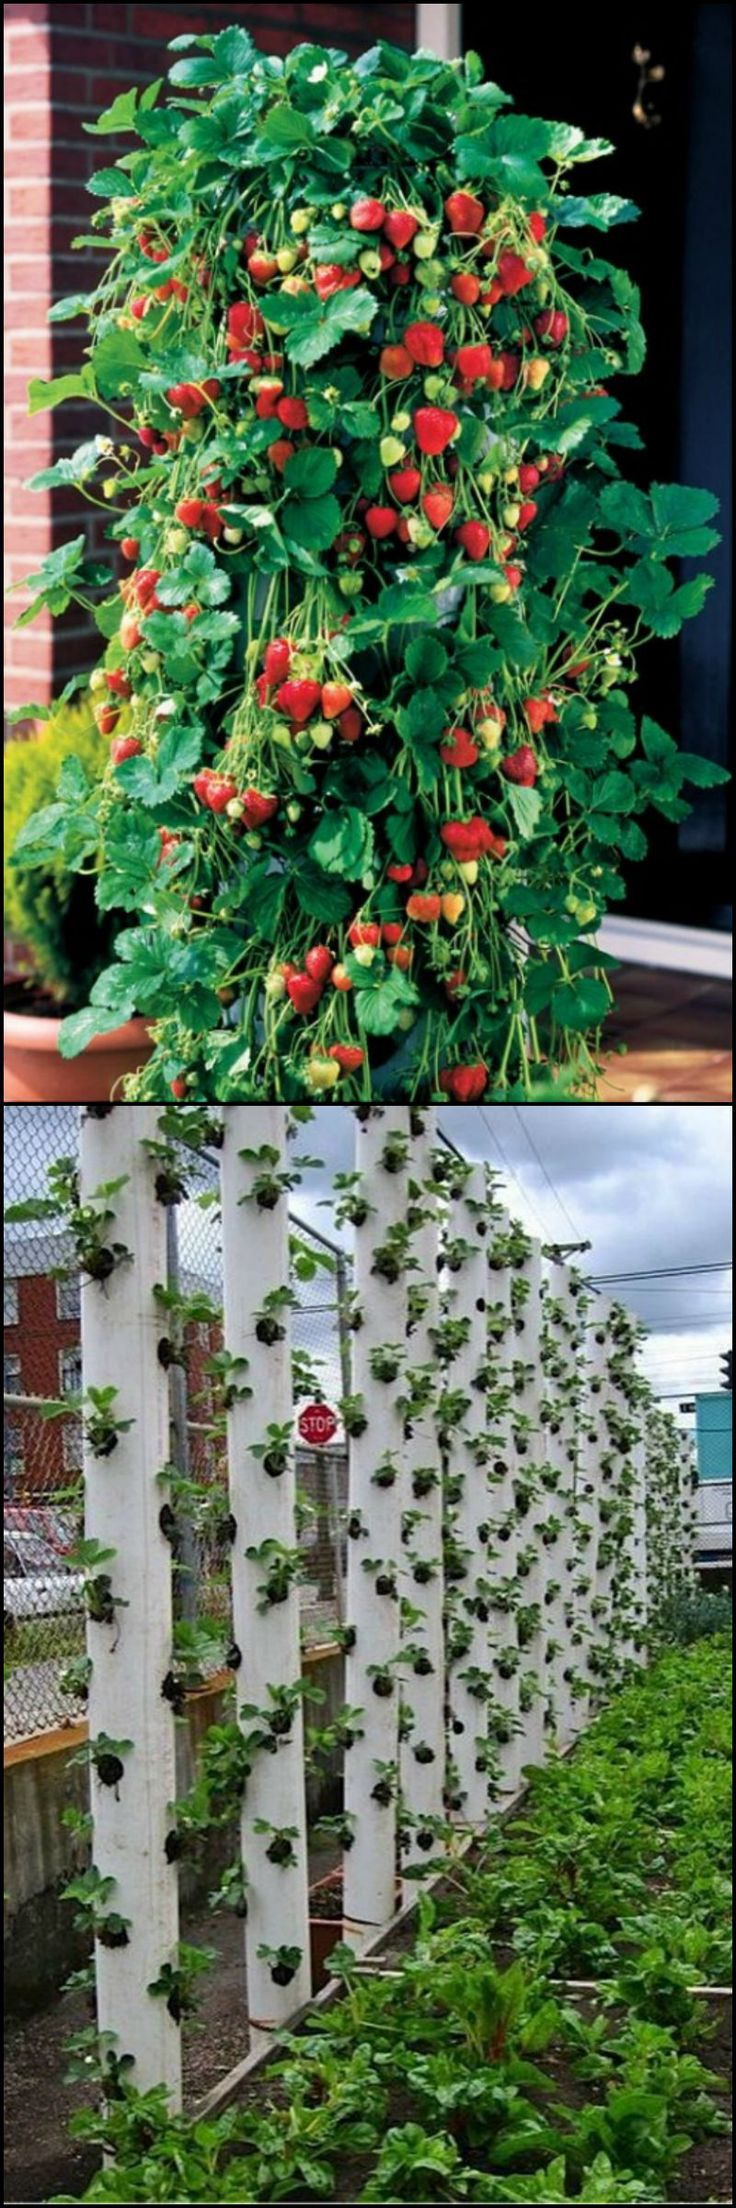 Strawberry Garden Ideas diy strawberry planter Want To Grow Strawberries But